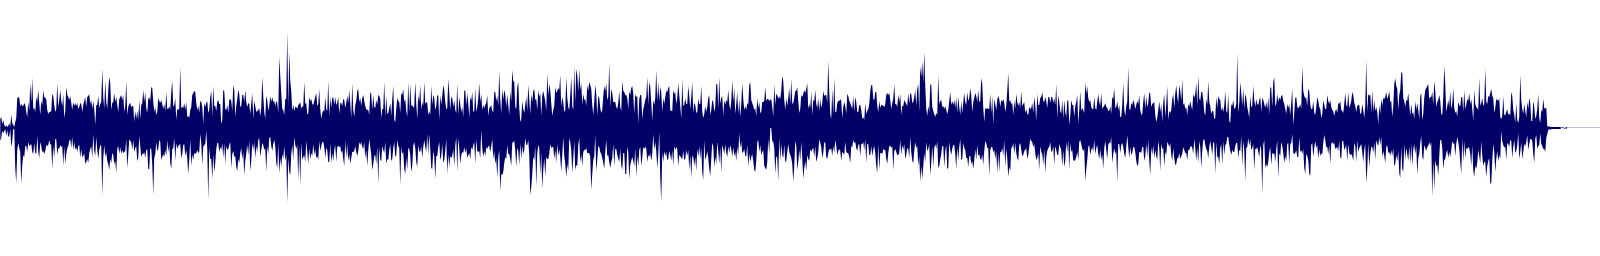 waveform of track #113166